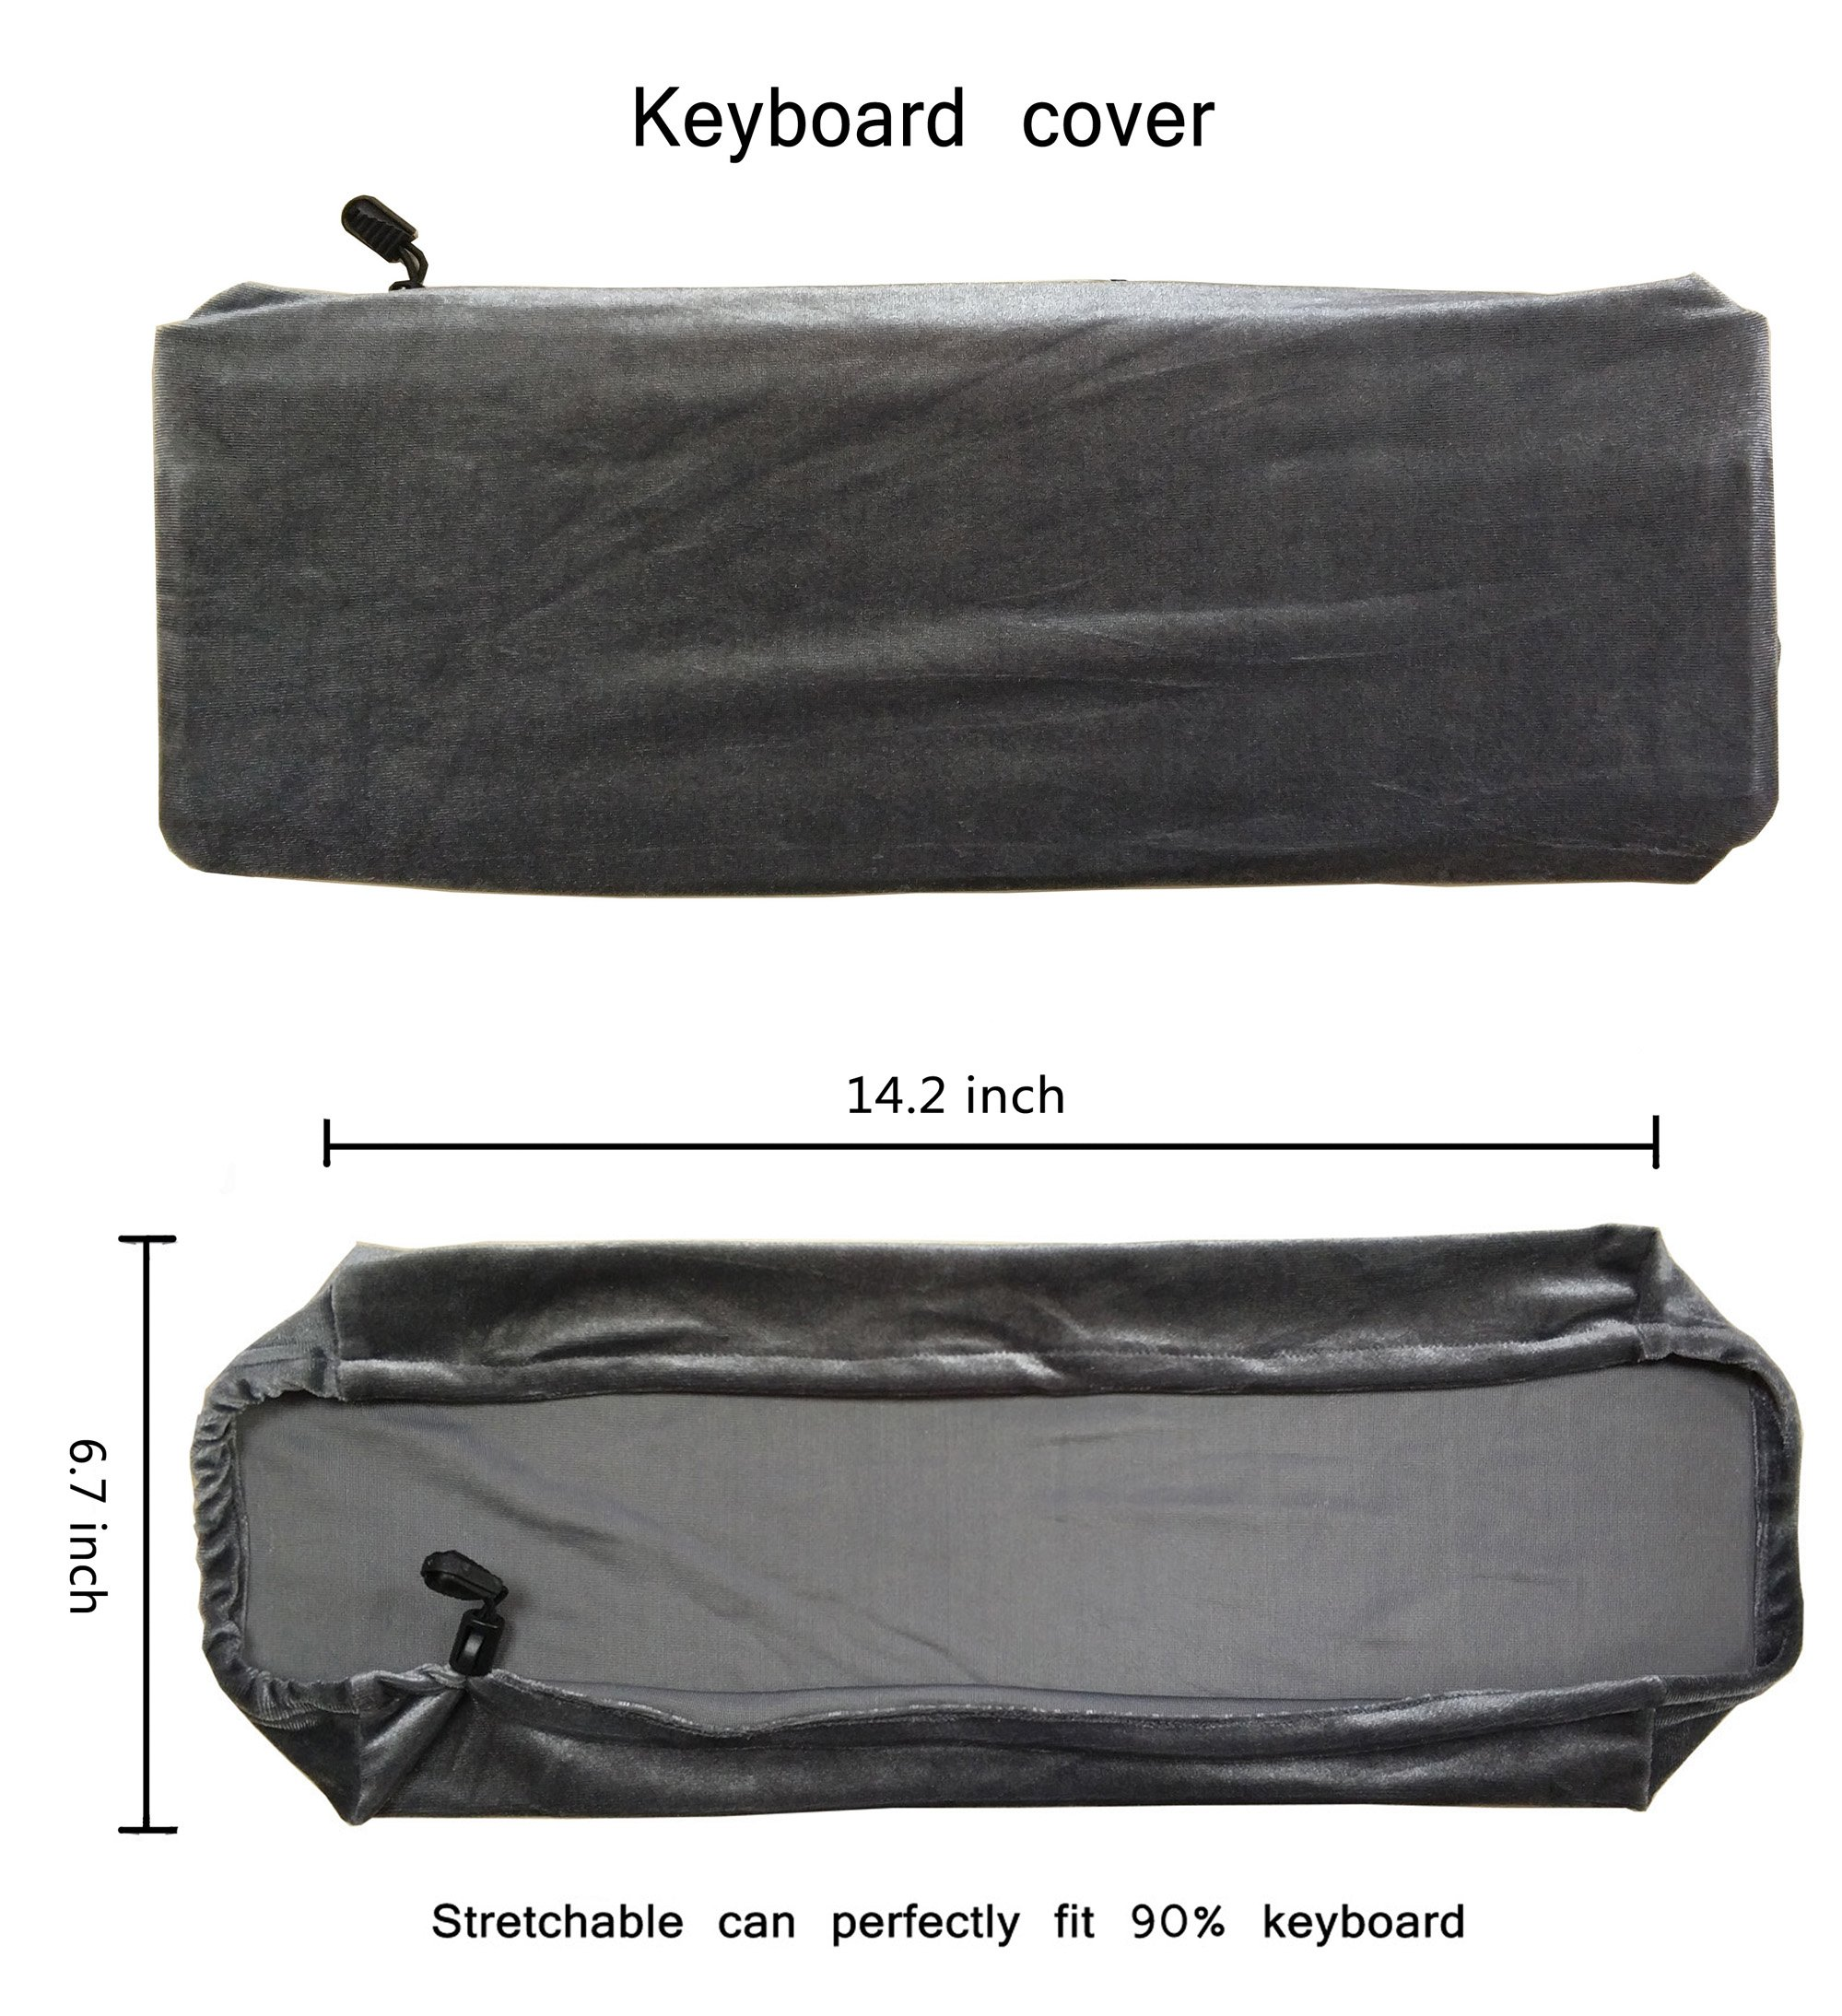 WOMACO Stretch Monitor Cover Protector, Monitor + Keyboard + Mouse Desktop 3 Pieces Set Dustproof Cover by WOMACO (Image #4)